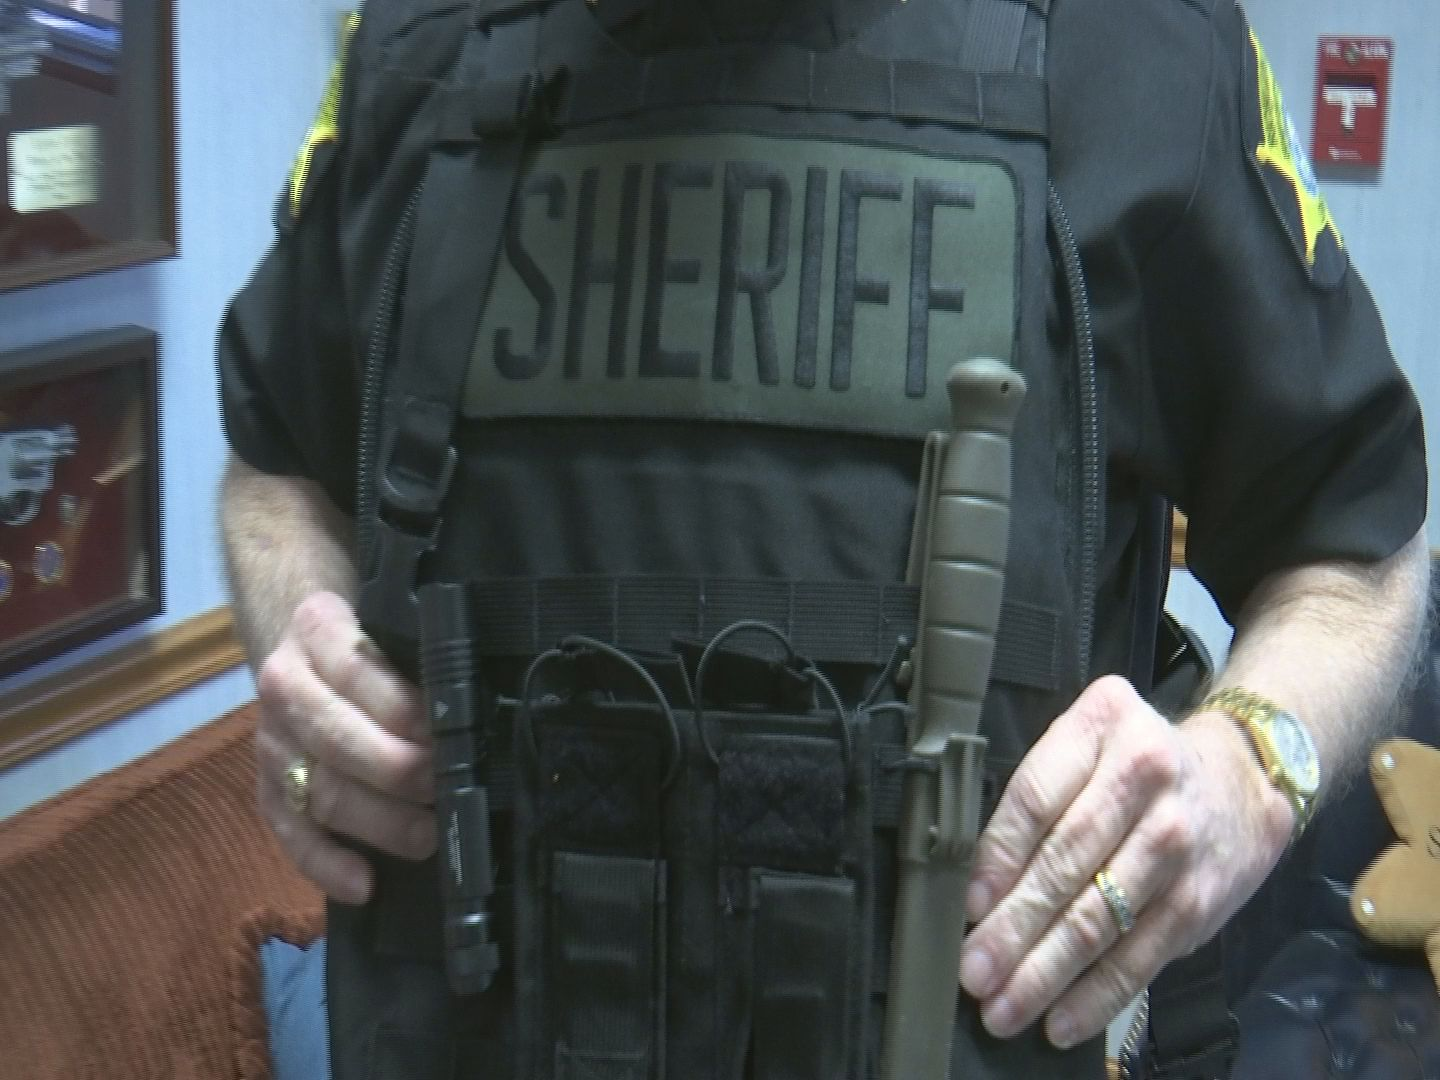 Active shooter vests